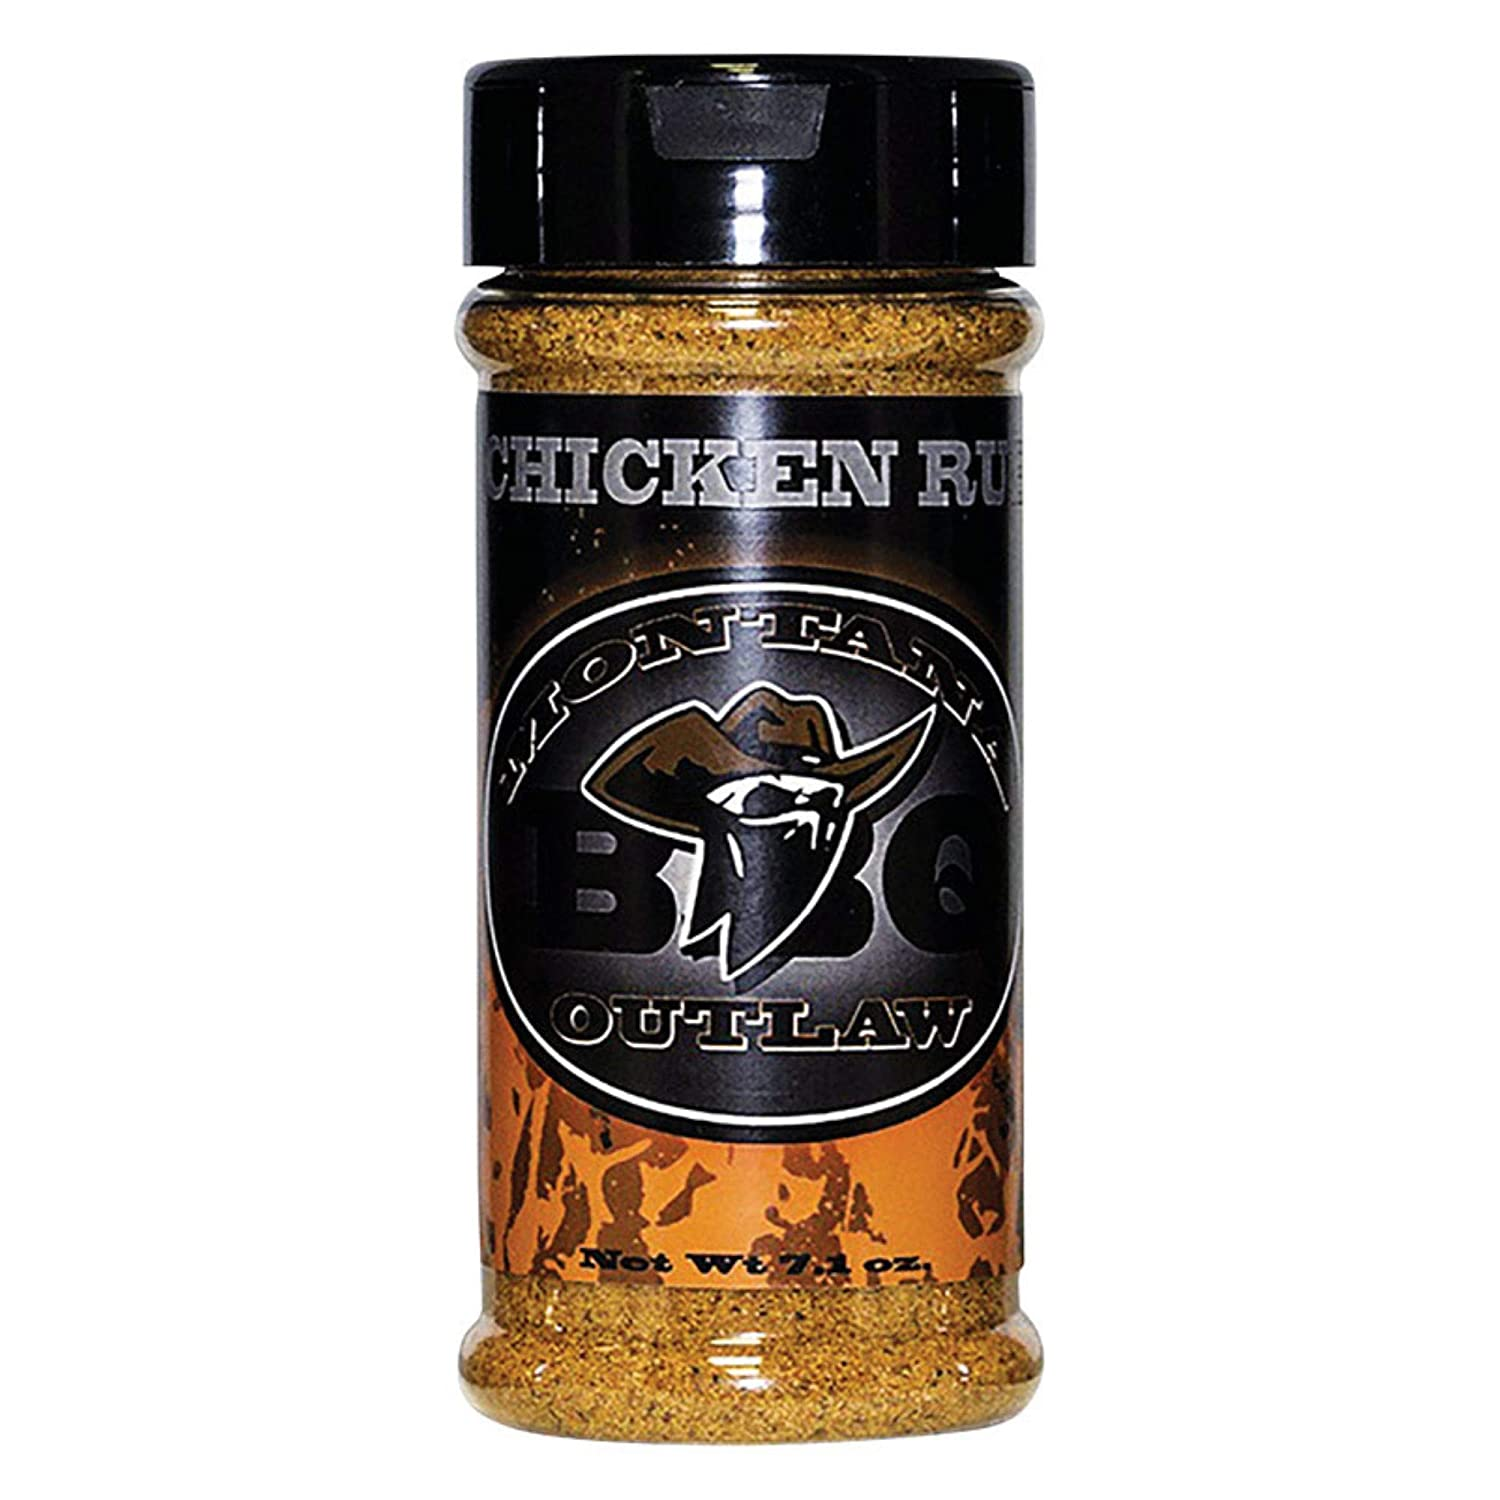 MONTANA OUTLAW RUB (CHICKEN, 7.1 oz)